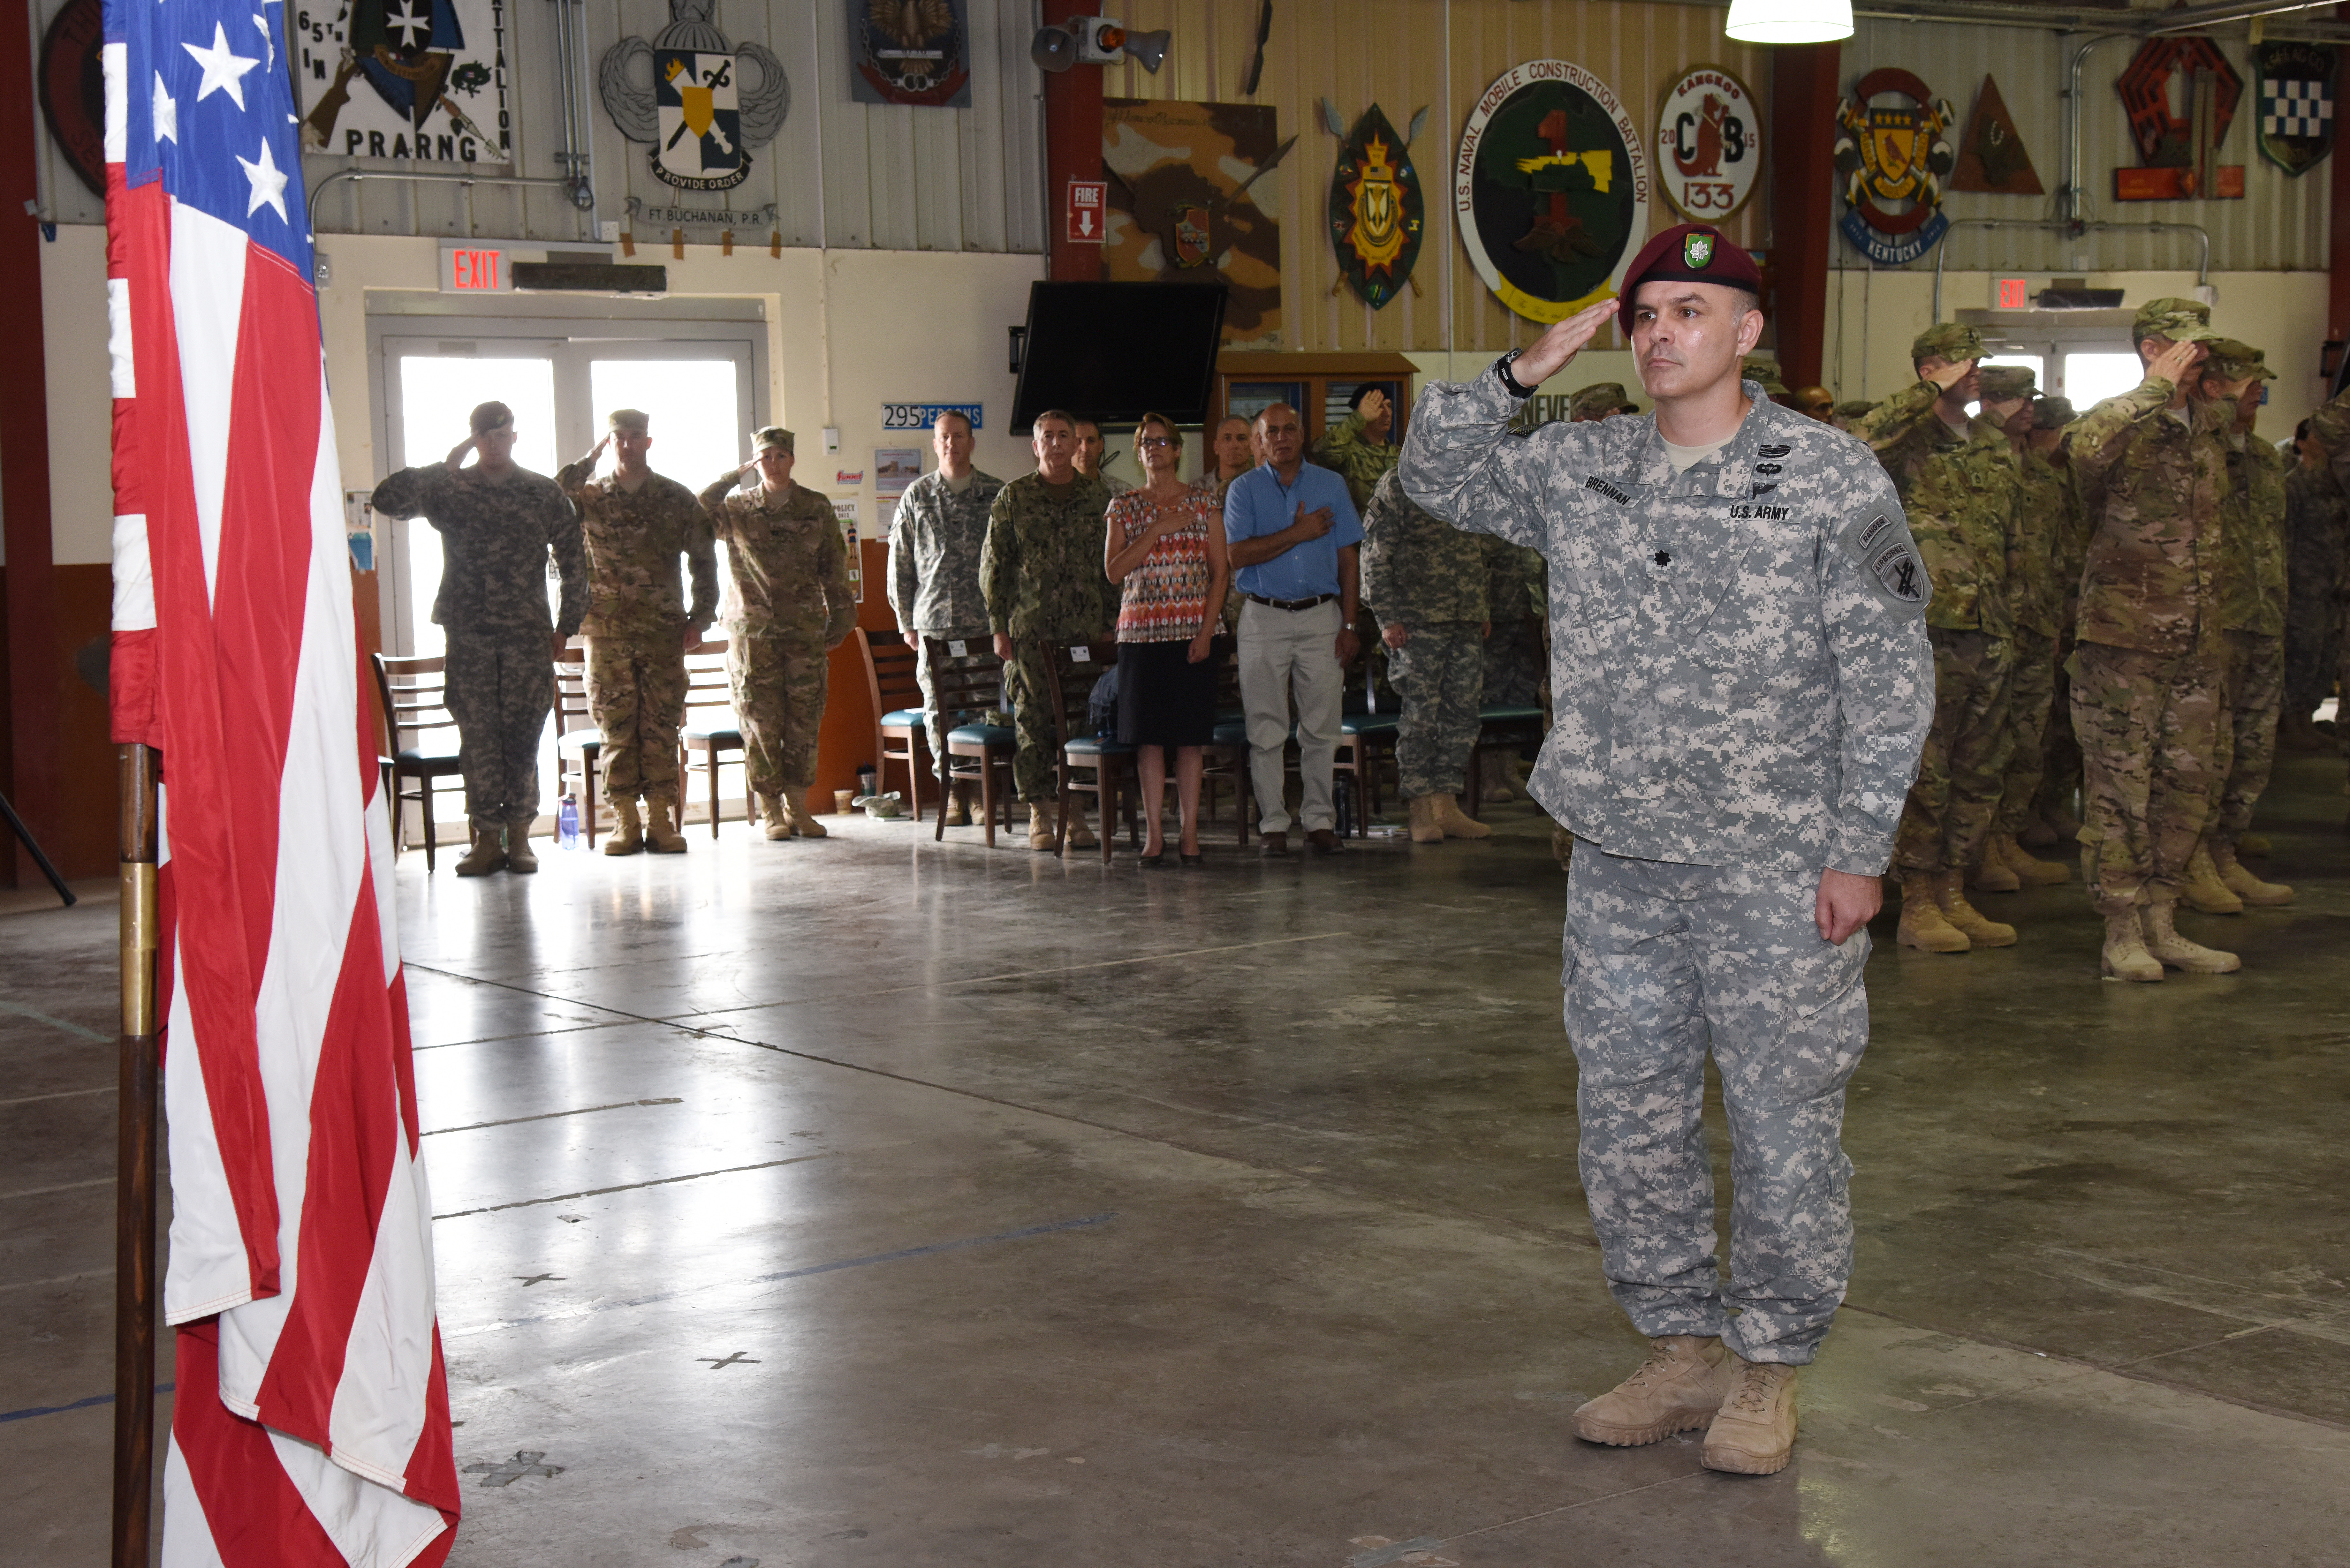 U.S. Army Lt. Col. Timothy Brennan, 404th Civil Affairs Battalion commander, renders a salute during the playing of the National Anthem at a transfer of authority ceremony June 22, 2015, at Camp Lemonnier, Djibouti.  The ceremony signified the transfer of authority from the out-going unit to the incoming unit.  (U.S. Air Force photo by Staff Sgt. Maria Bowman)